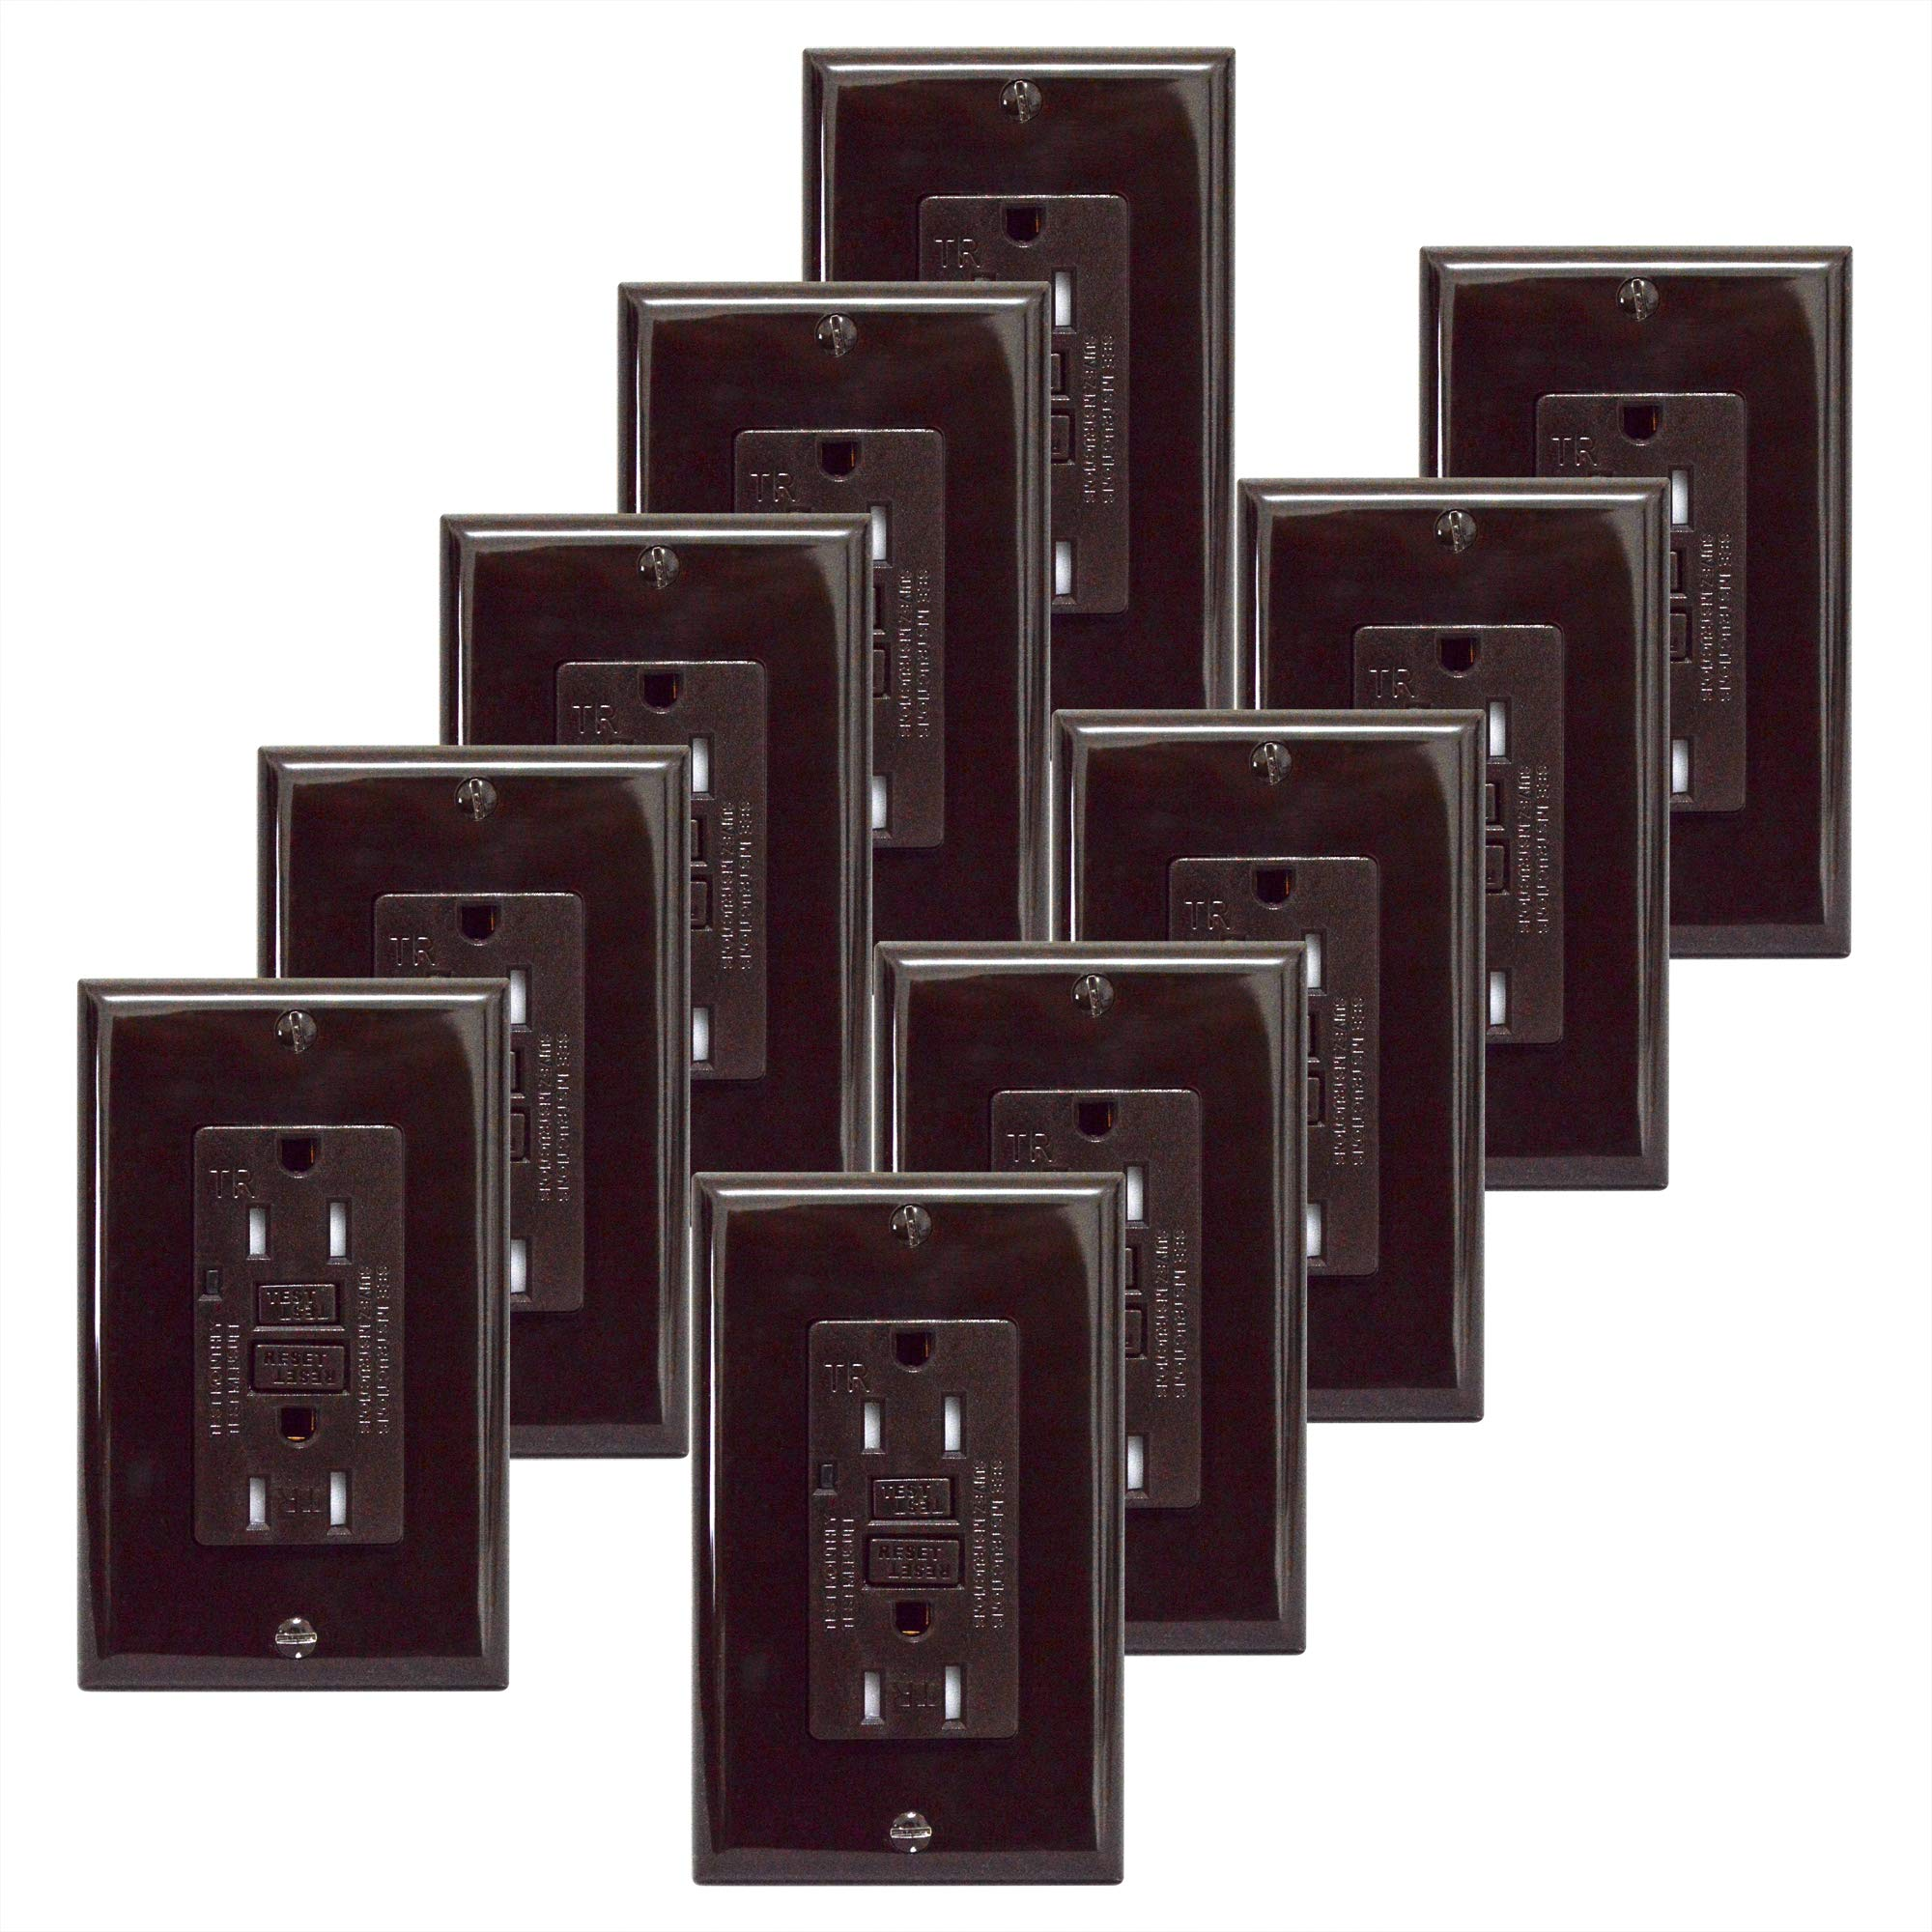 GFCI 15A Tamper Resistant Duplex Receptacle Standard Decorative Outlet with LED Indicator, Ground Fault Circuit Interrupter, Decorative Wallplate, Safelock Protection, UL Listed, Brown (10-Pack)